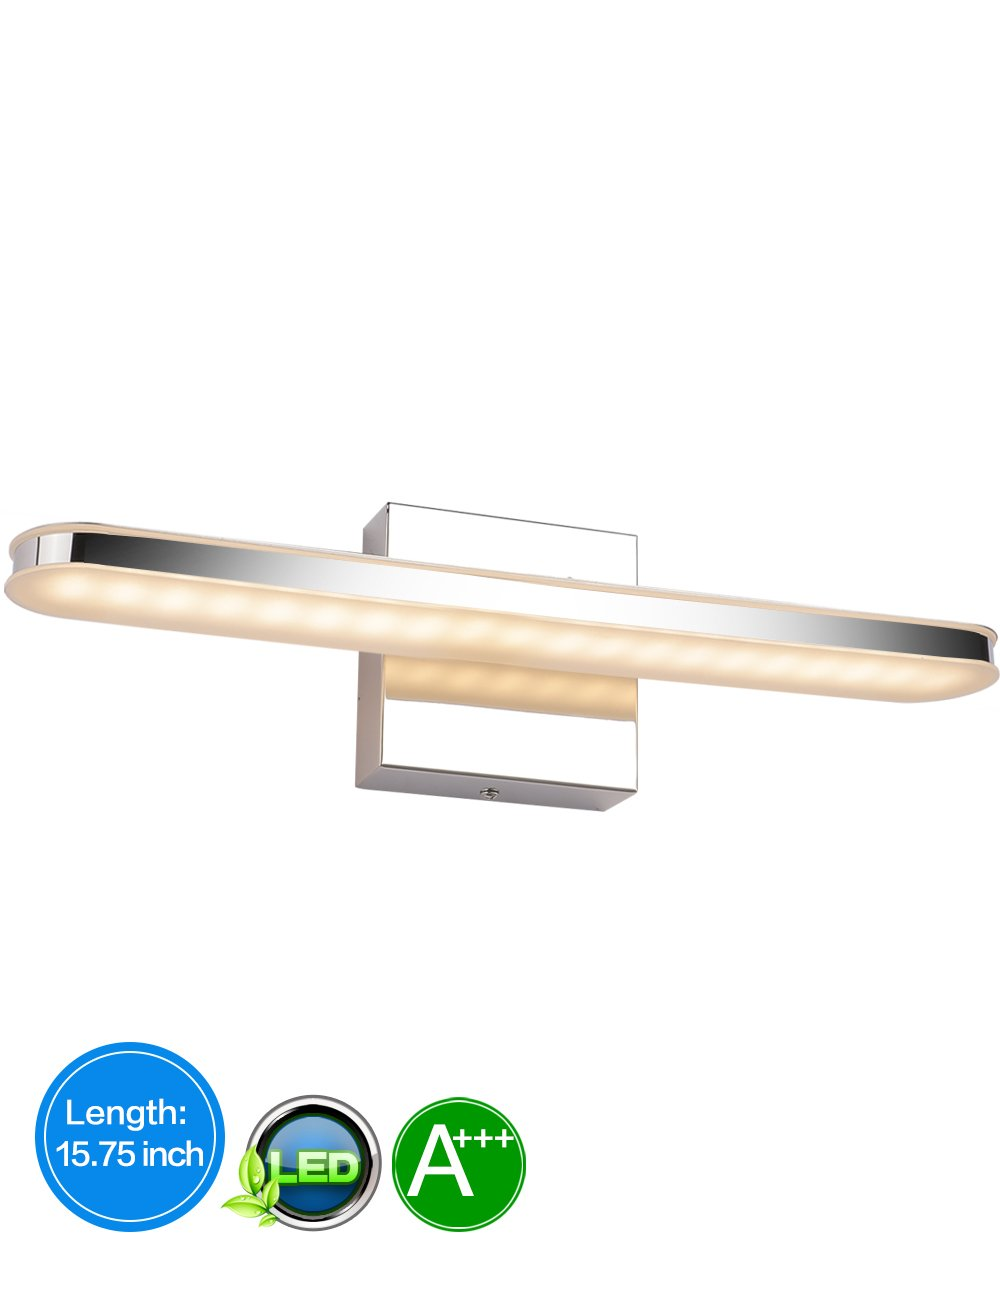 LED Bathroom Vanity Lighting Fixtures Long Shade Stainless Steel Bath Mirror Lamps WaLL Lights